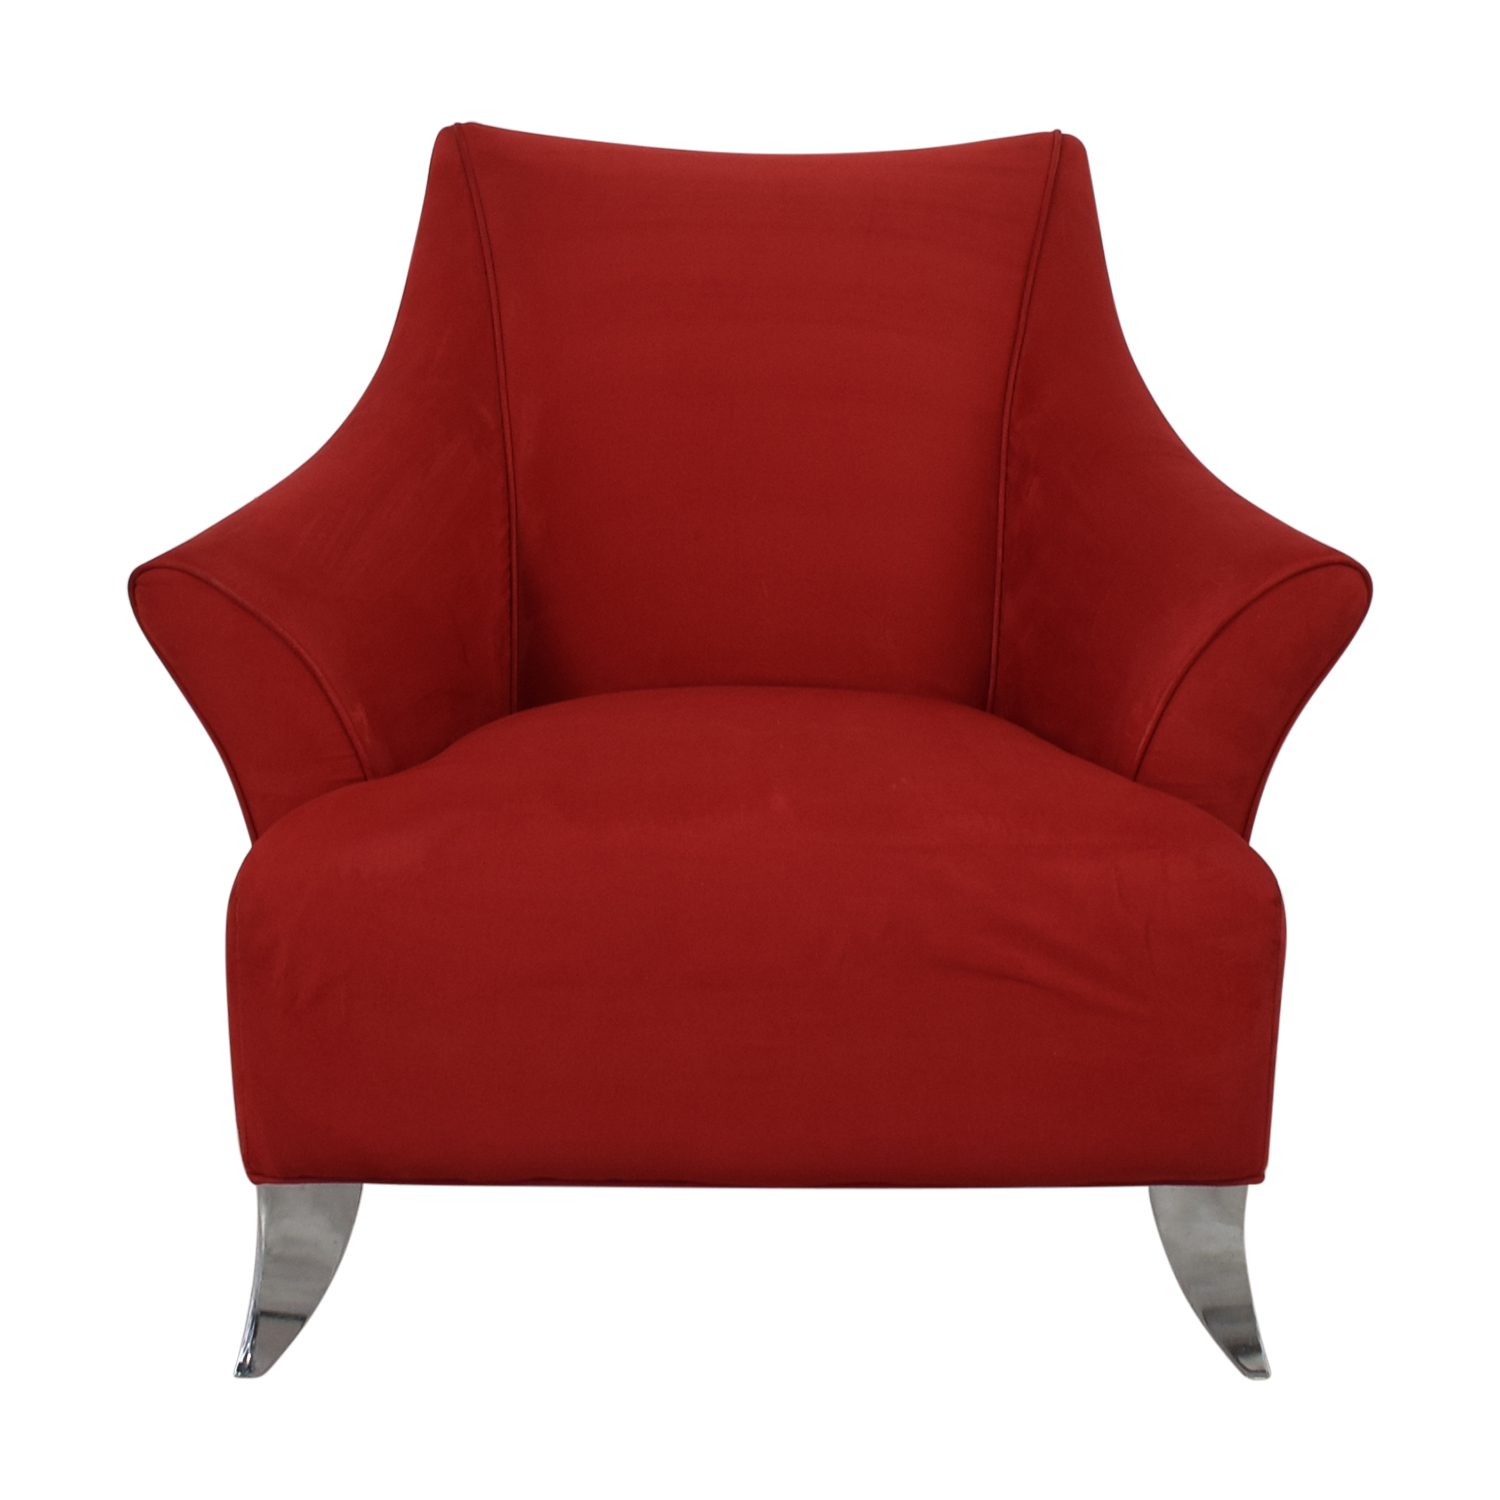 Red Accent Chair dimensions